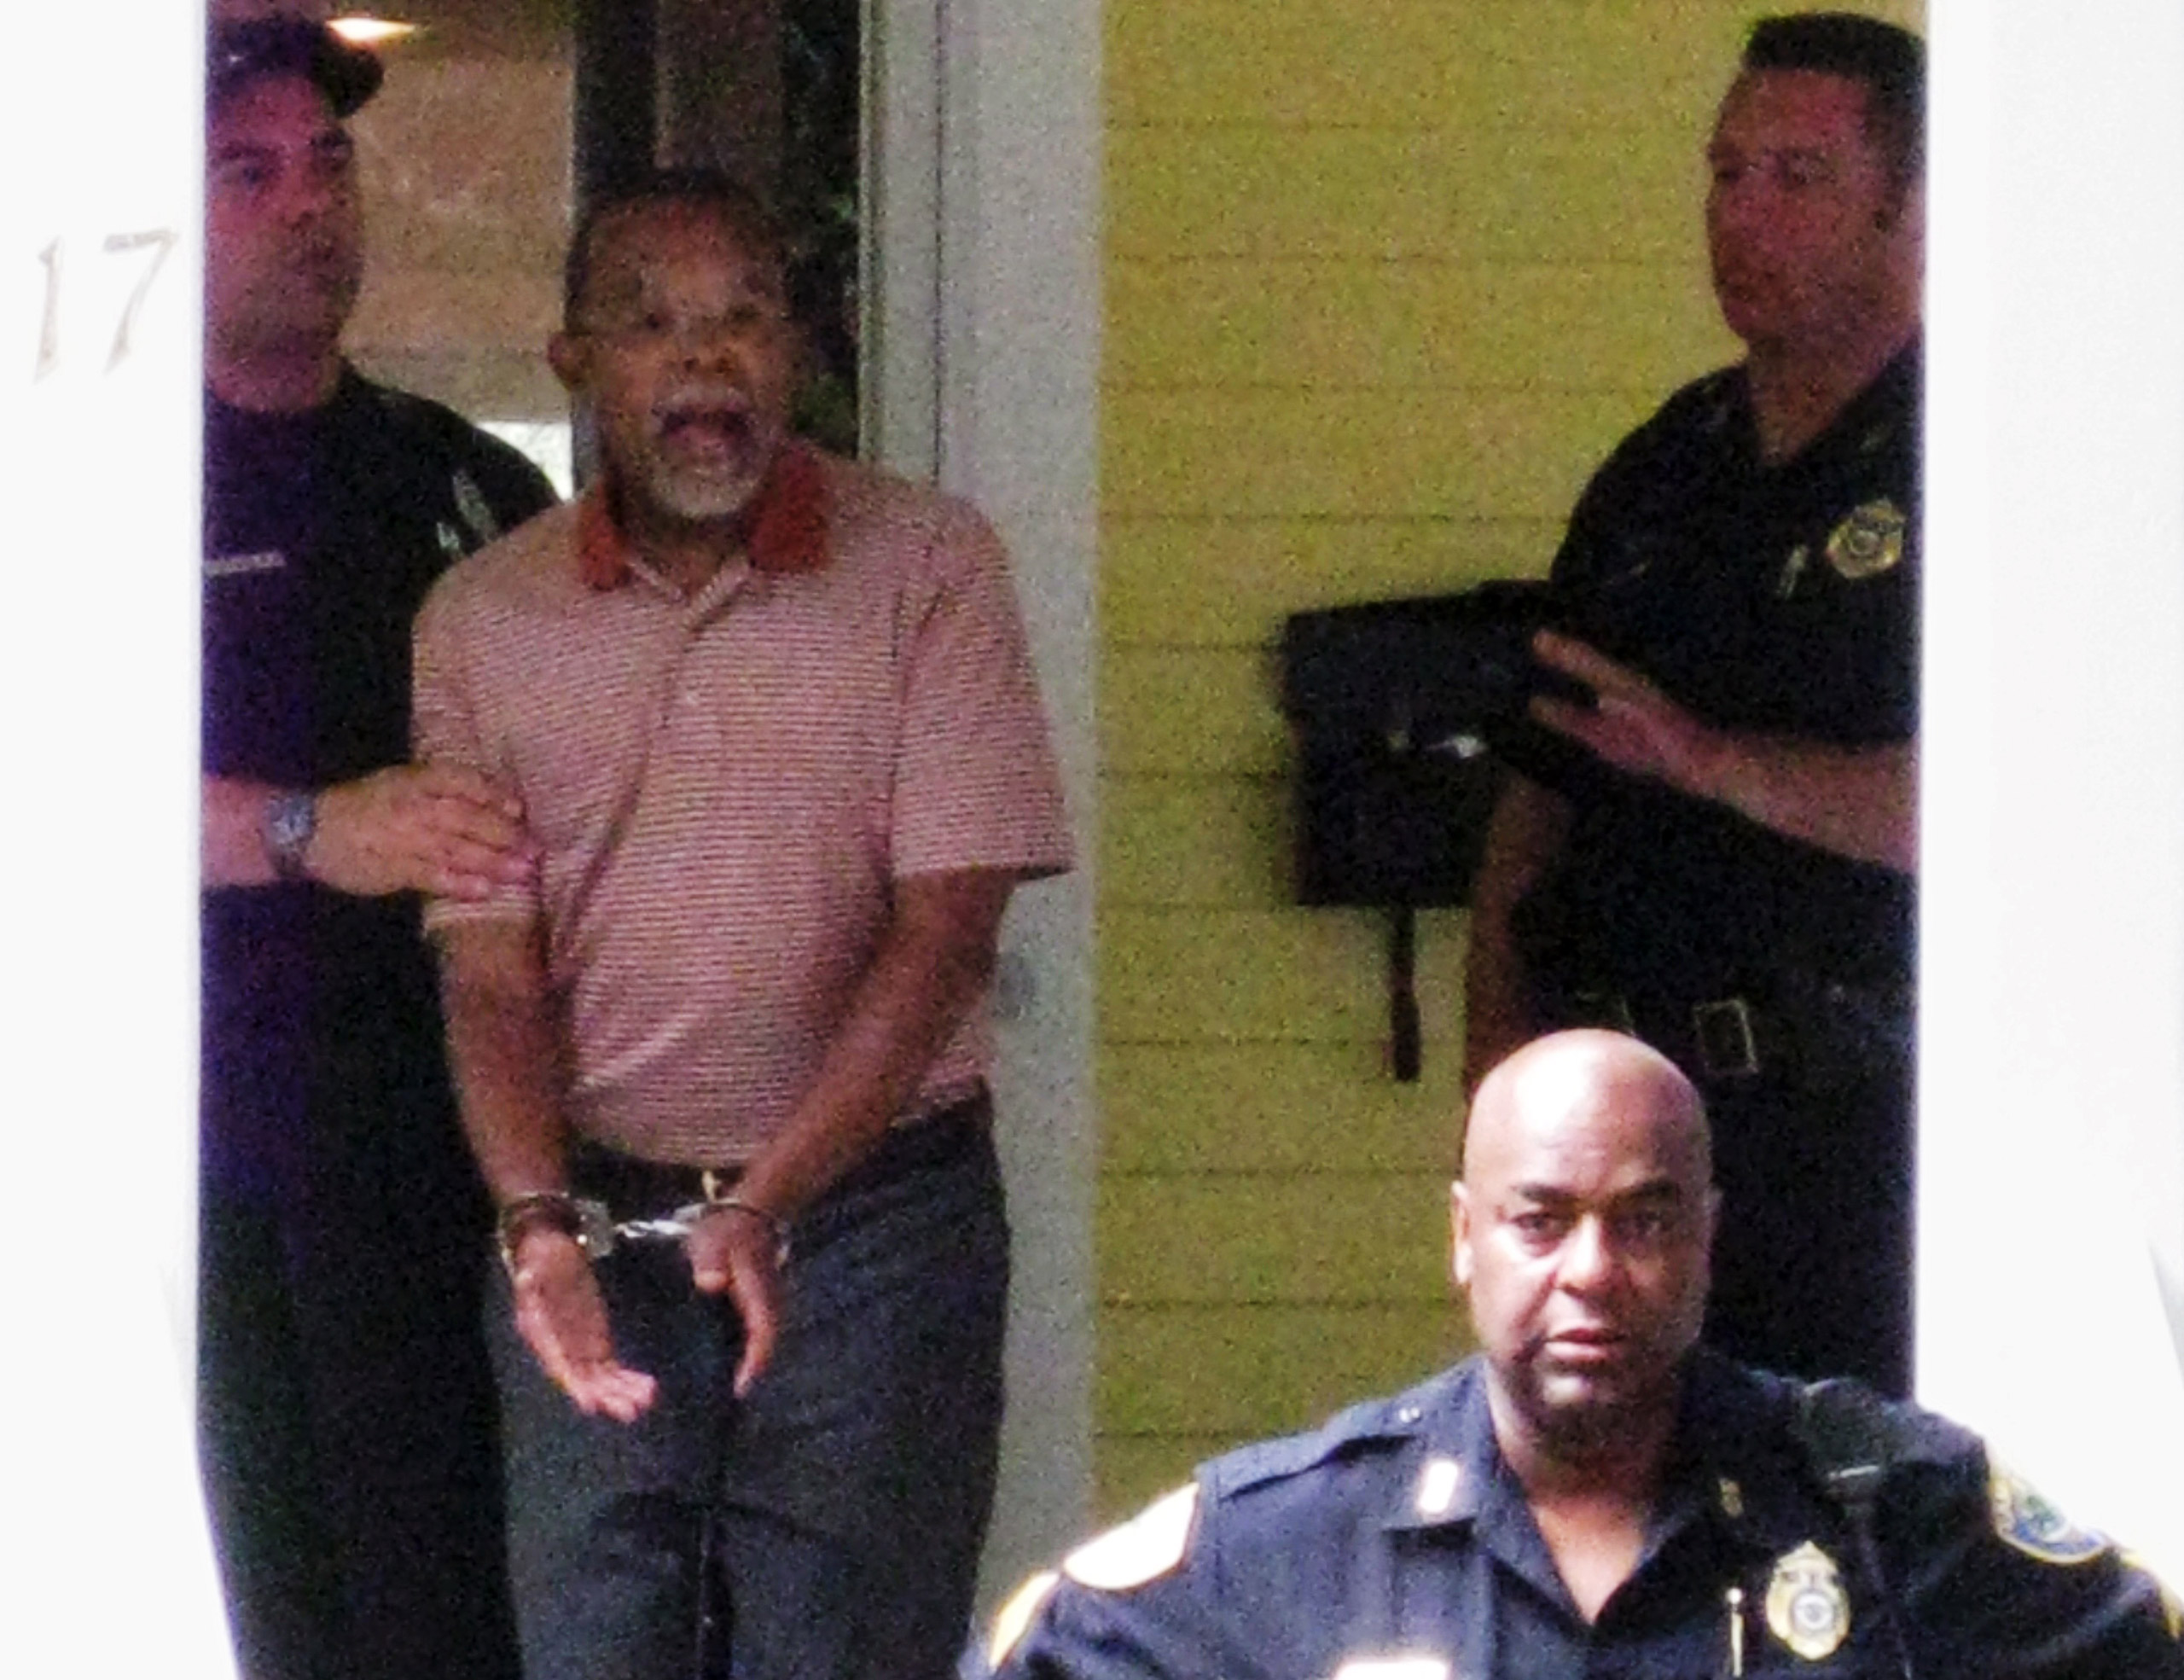 Henry Louis Gates Jr. center, the director of Harvard University's W.E.B. DuBois Institute for African and African American Research, is arrested at his home in Cambridge, Mass. on July 16, 2009.